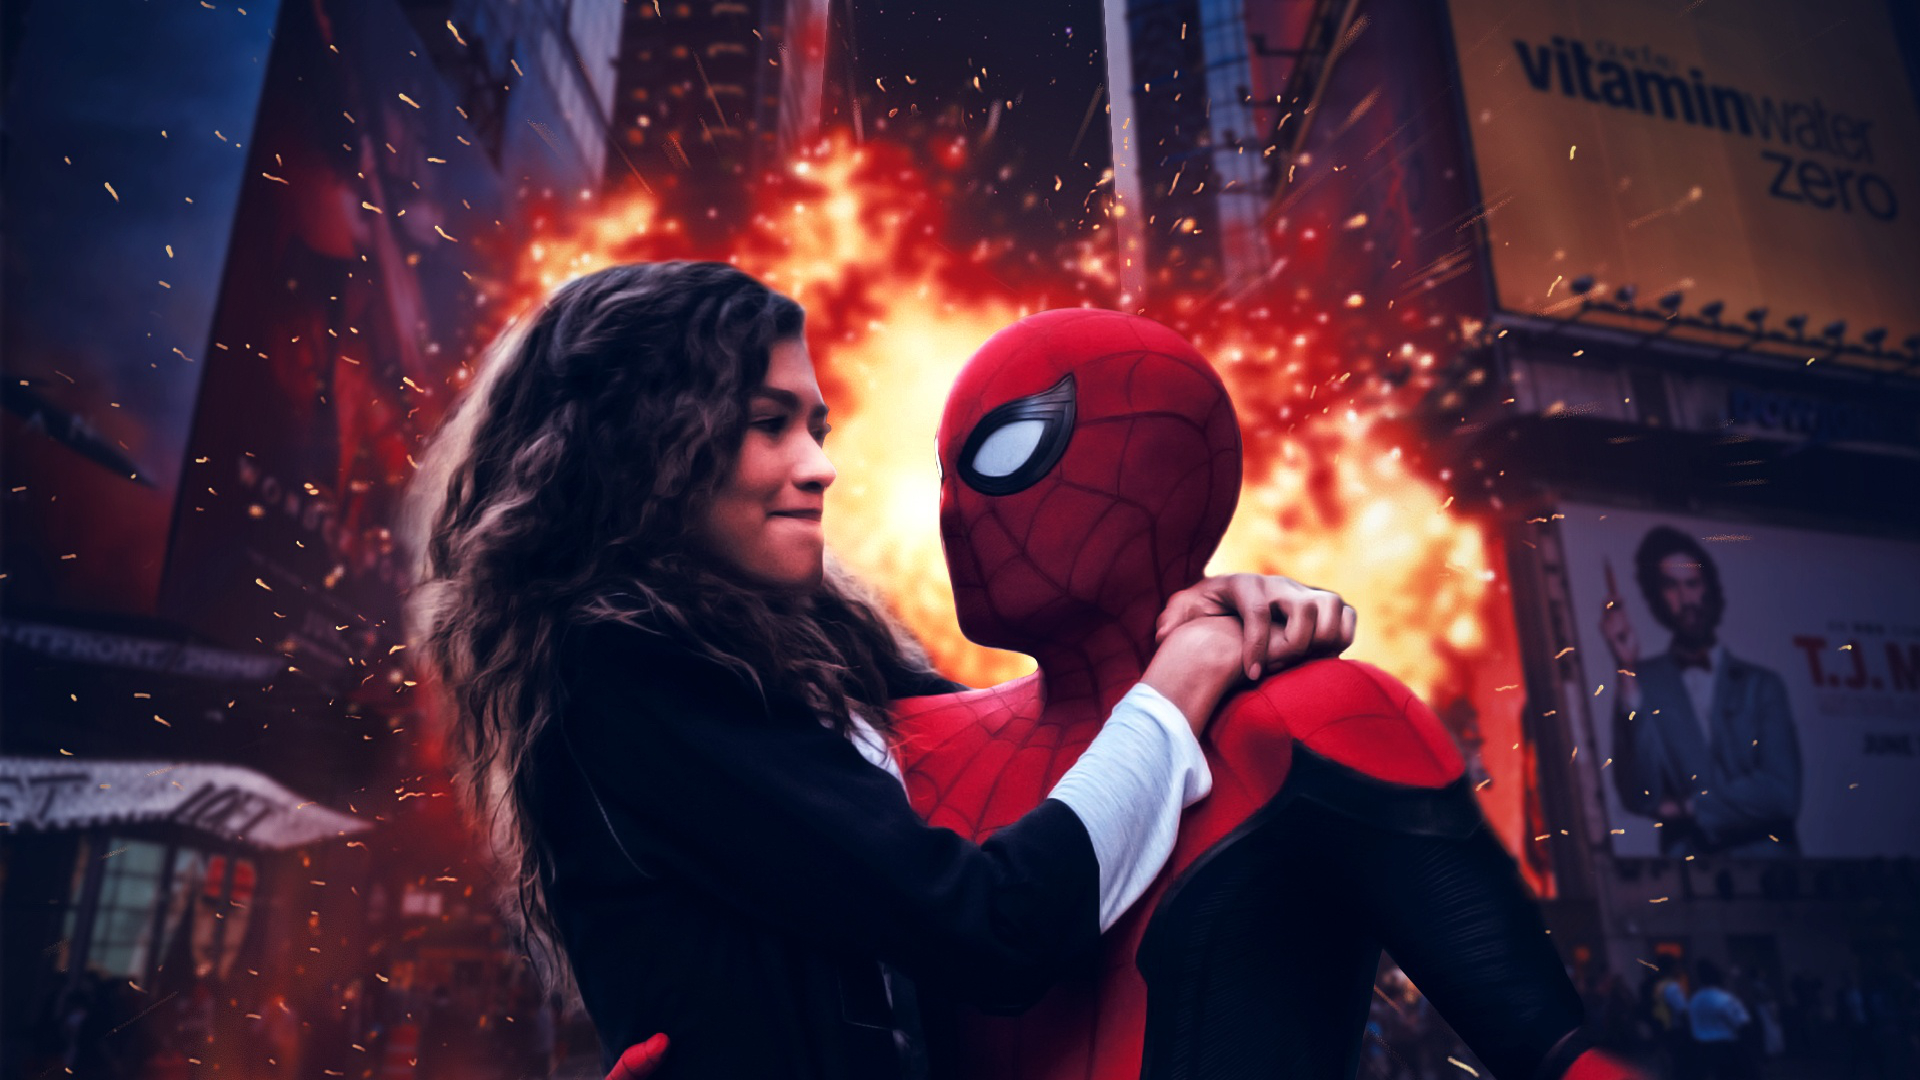 Spiderman Far From Home Free Download Wallpaper Hd Mewallpaper